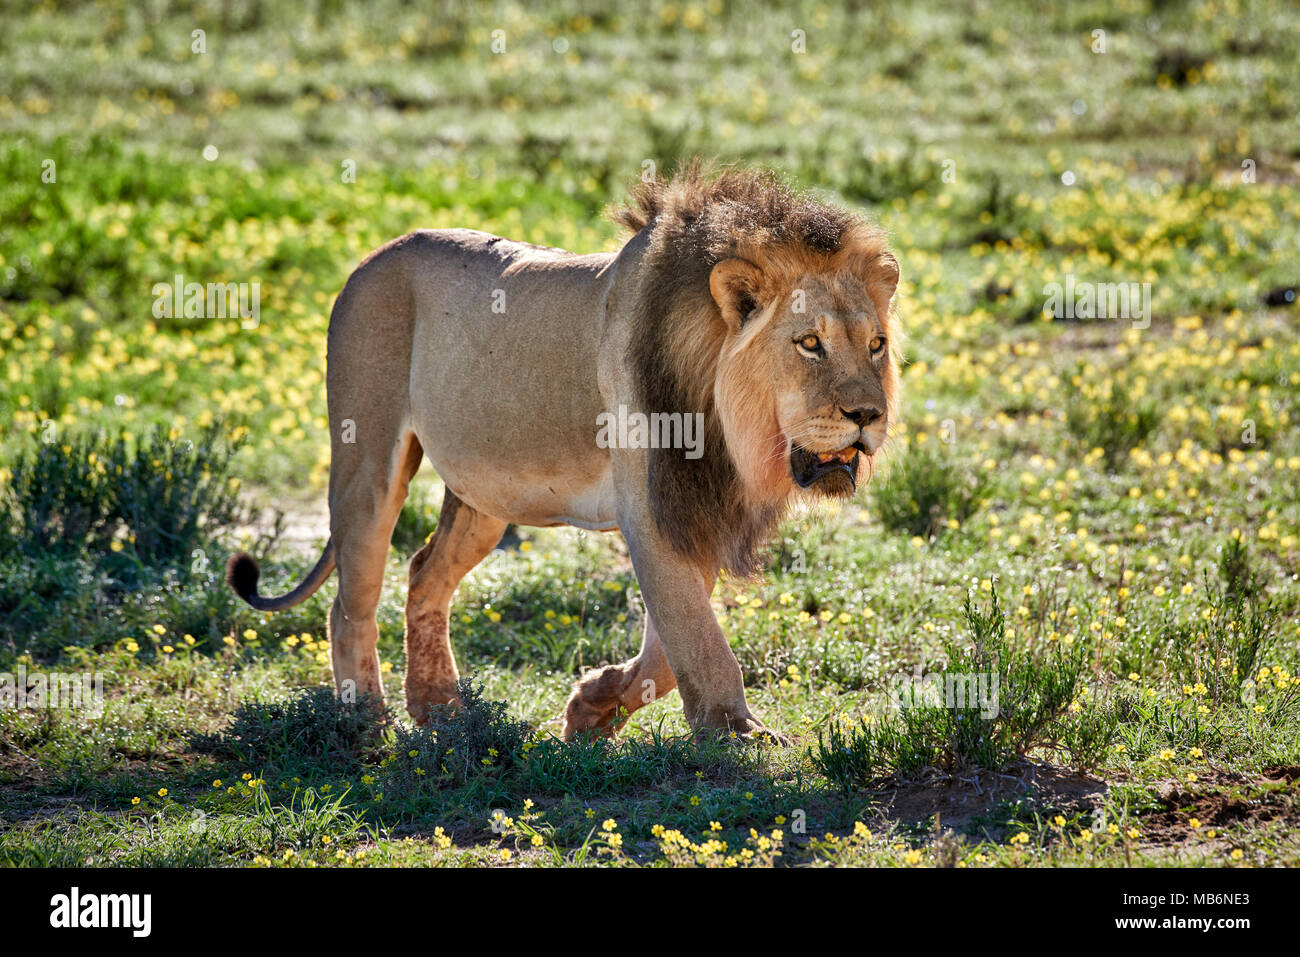 male lion patroling its territory, Panthera leo, Kgalagadi Transfrontier Park, South Africa, Africa - Stock Image